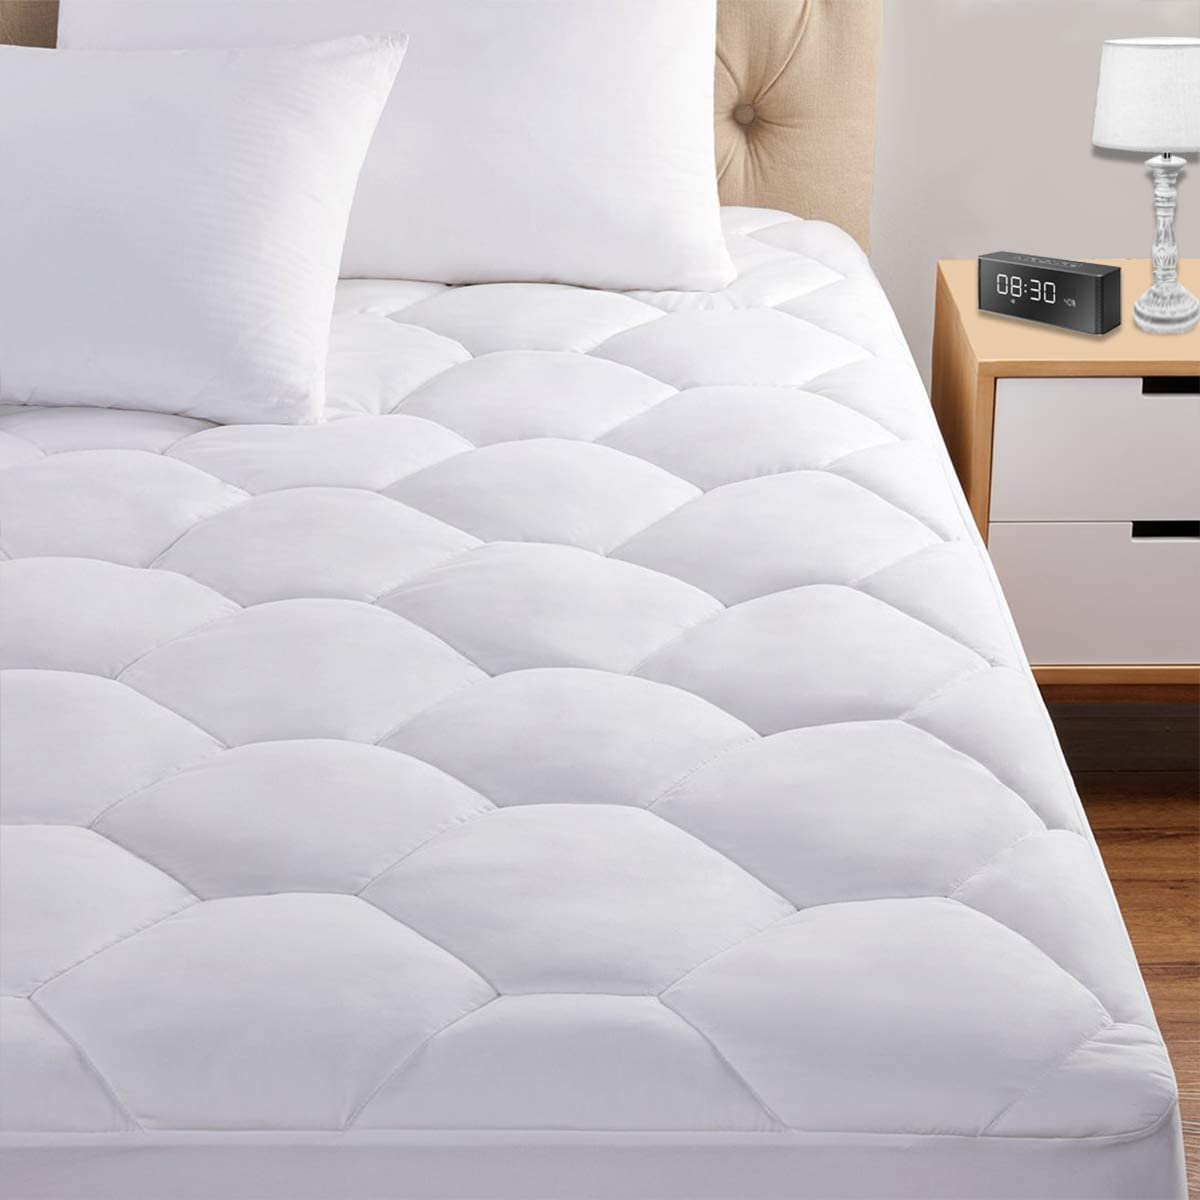 "Full Mattress Pad, 8-21"" Deep Pocket Protector Ultra Soft Quilted Fitted Topper Cover Breathable Fit for Dorm Home Hotel -White"